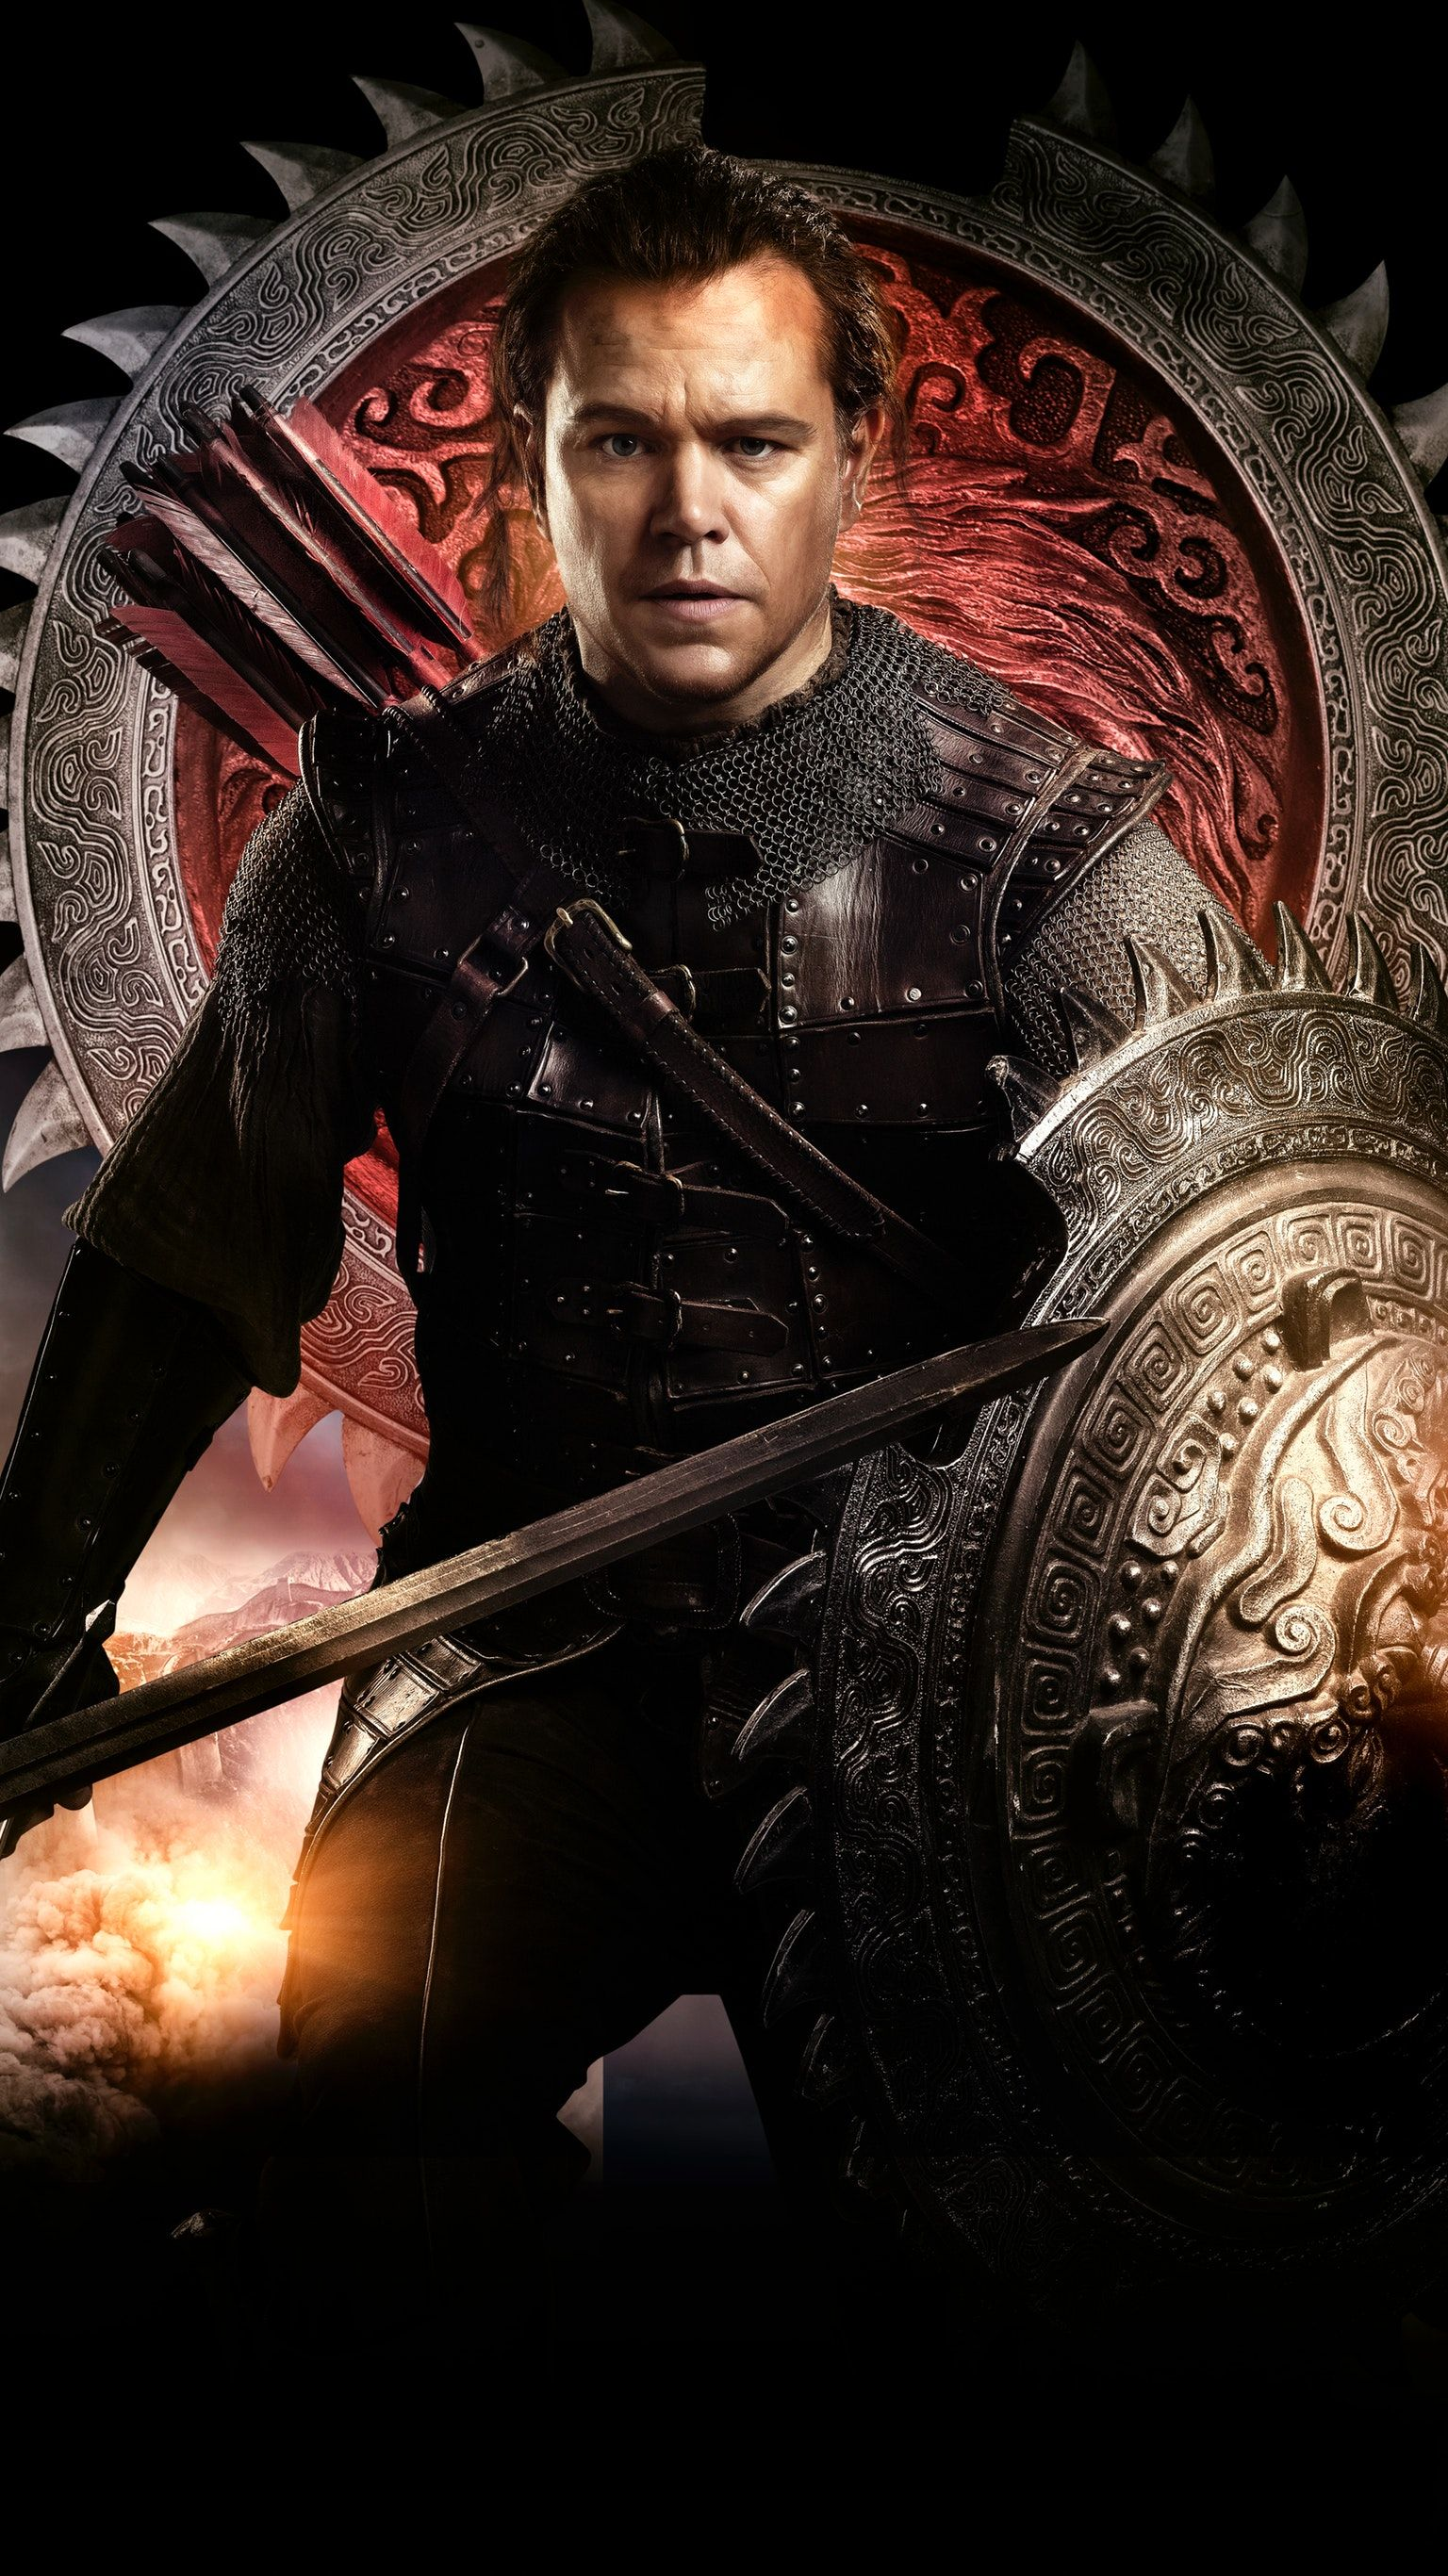 The Great Wall 2016 Phone Wallpaper New Movie Posters Top